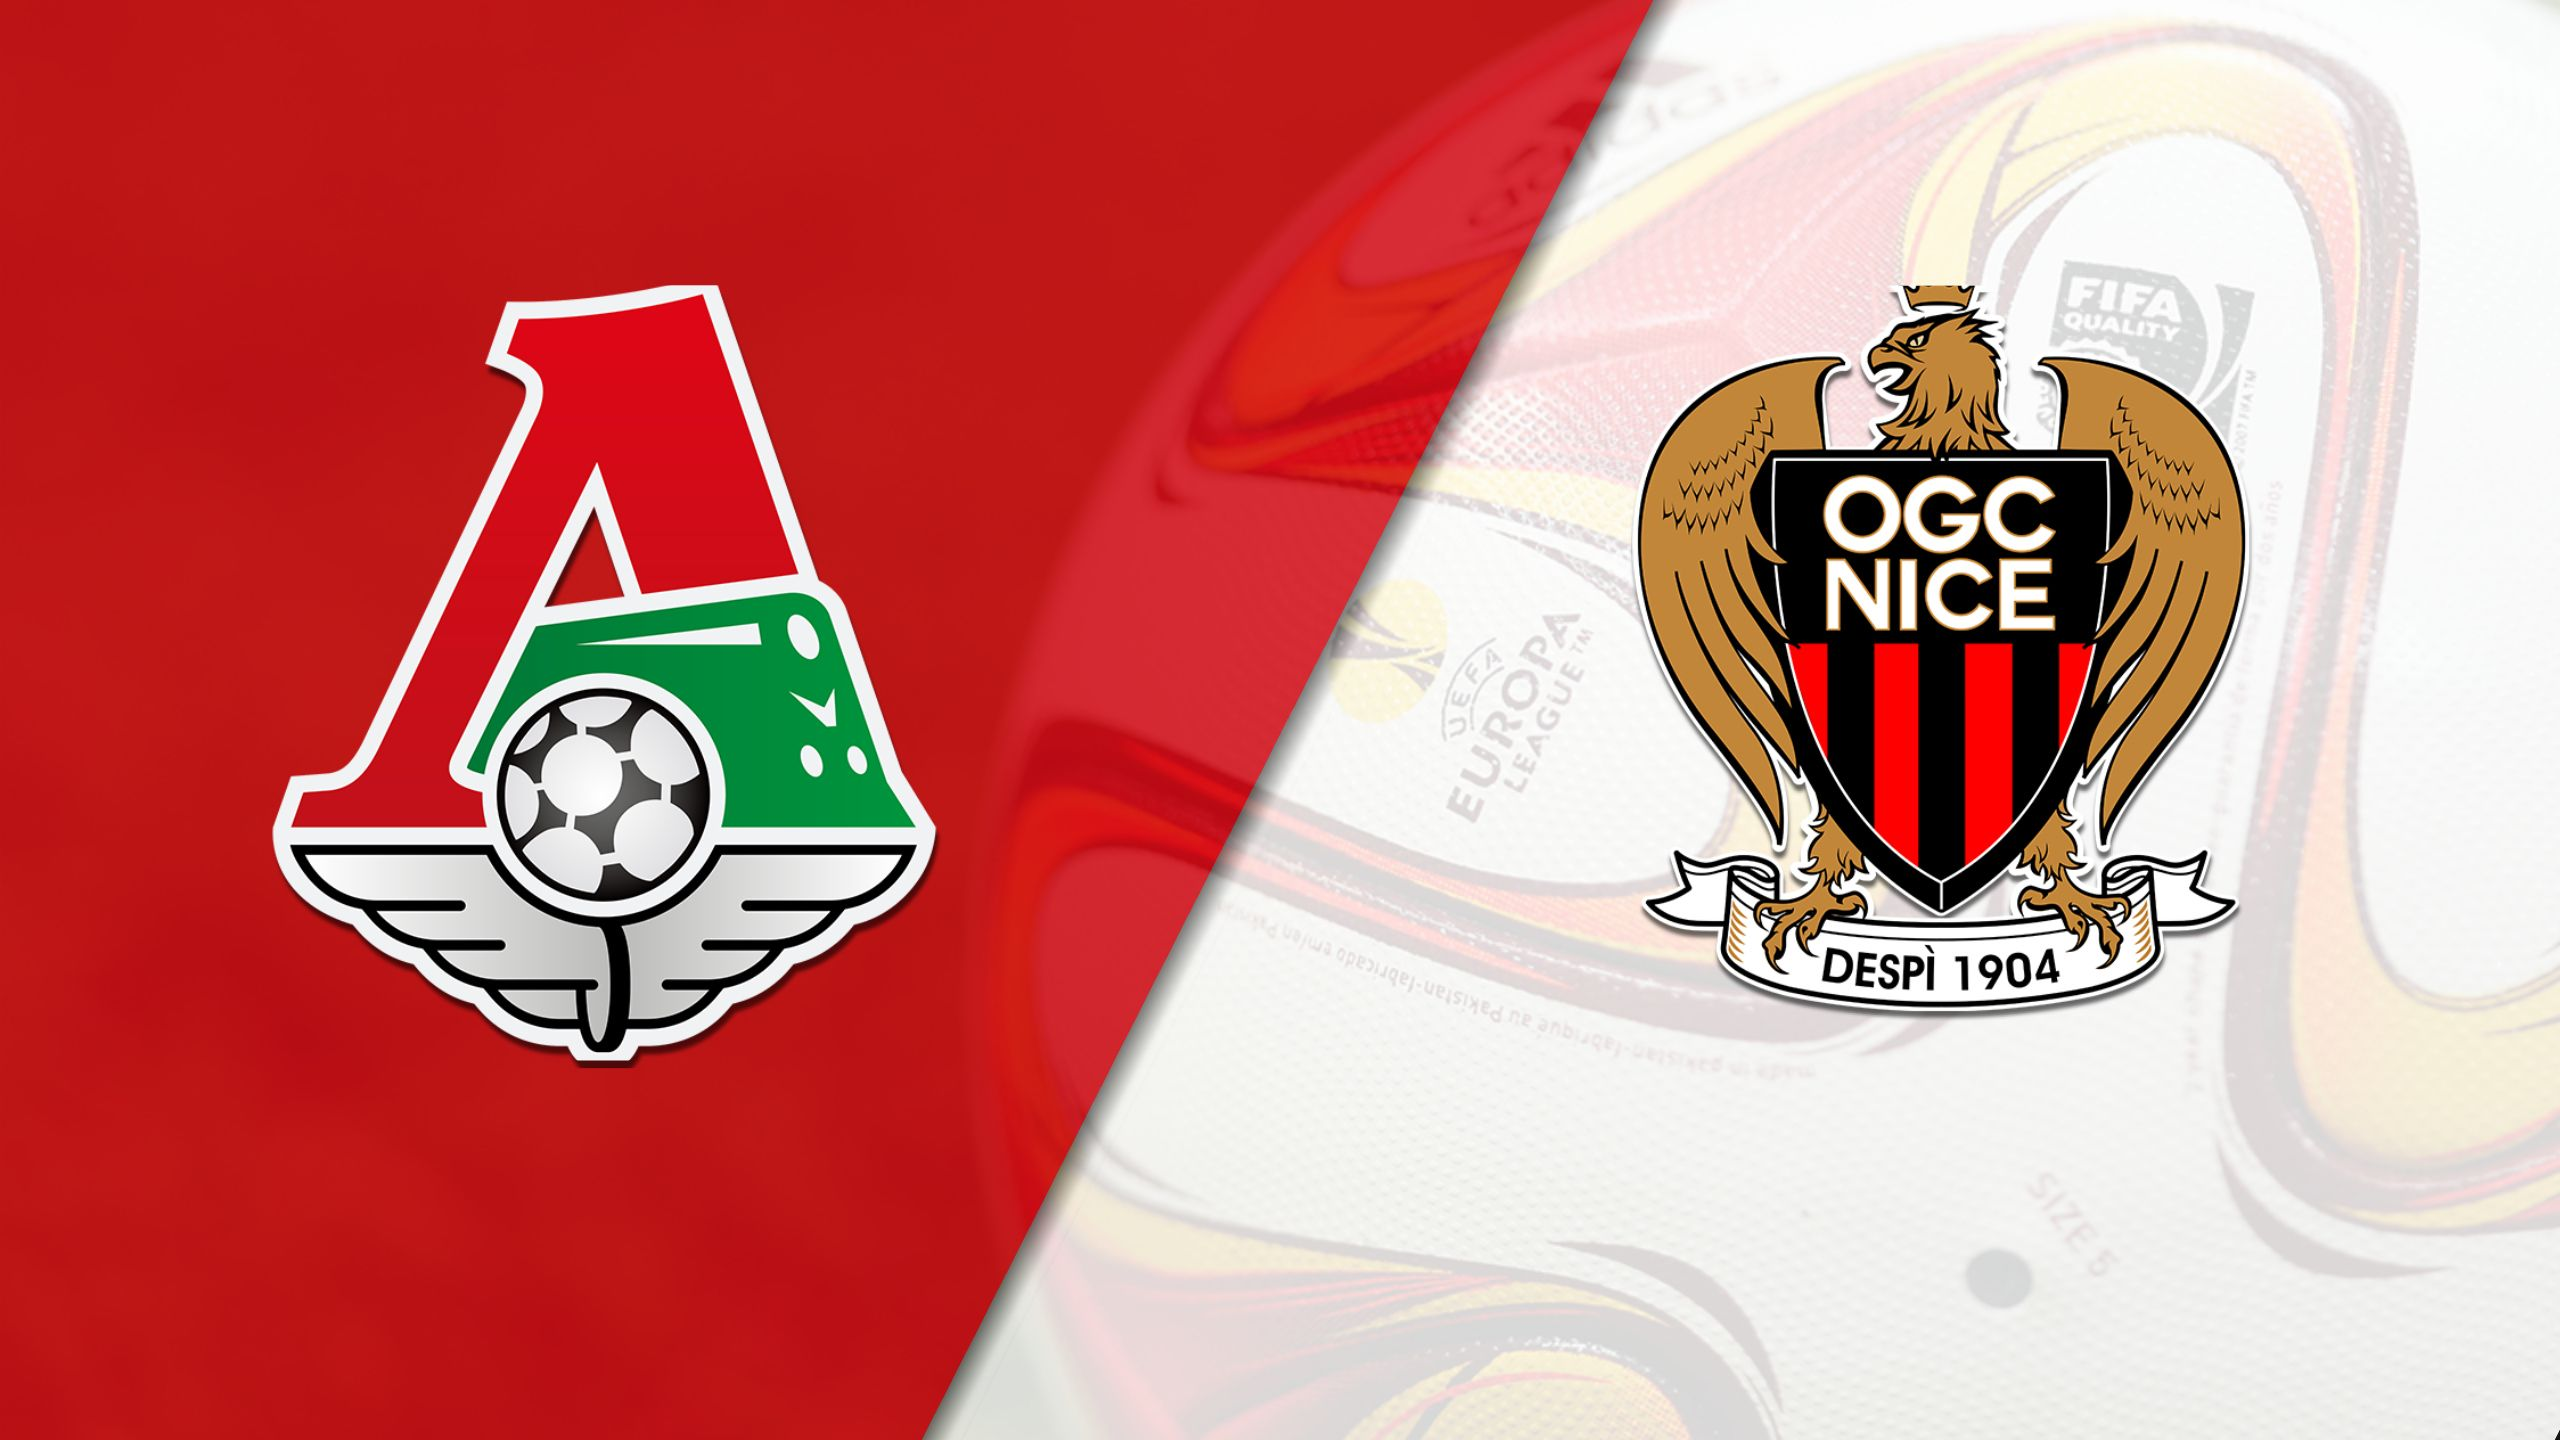 In Spanish - Lokomotiv Moscou vs. Nice (Round of 32, Second Leg) (UEFA Europa League)